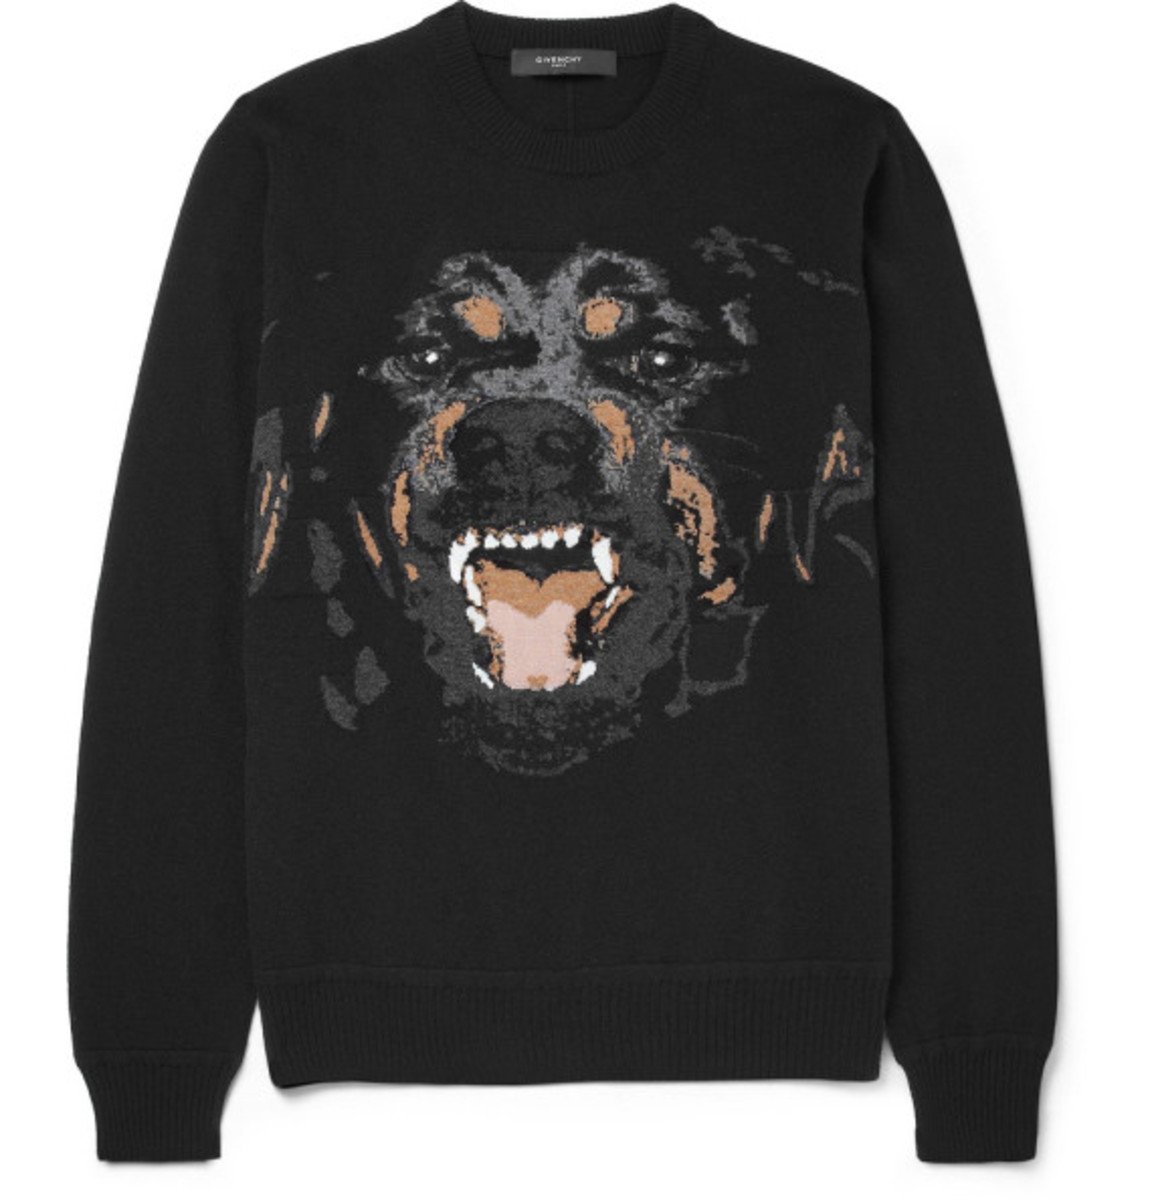 GIVENCHY – Rottweiler Print Cotton Sweatshirt - 1